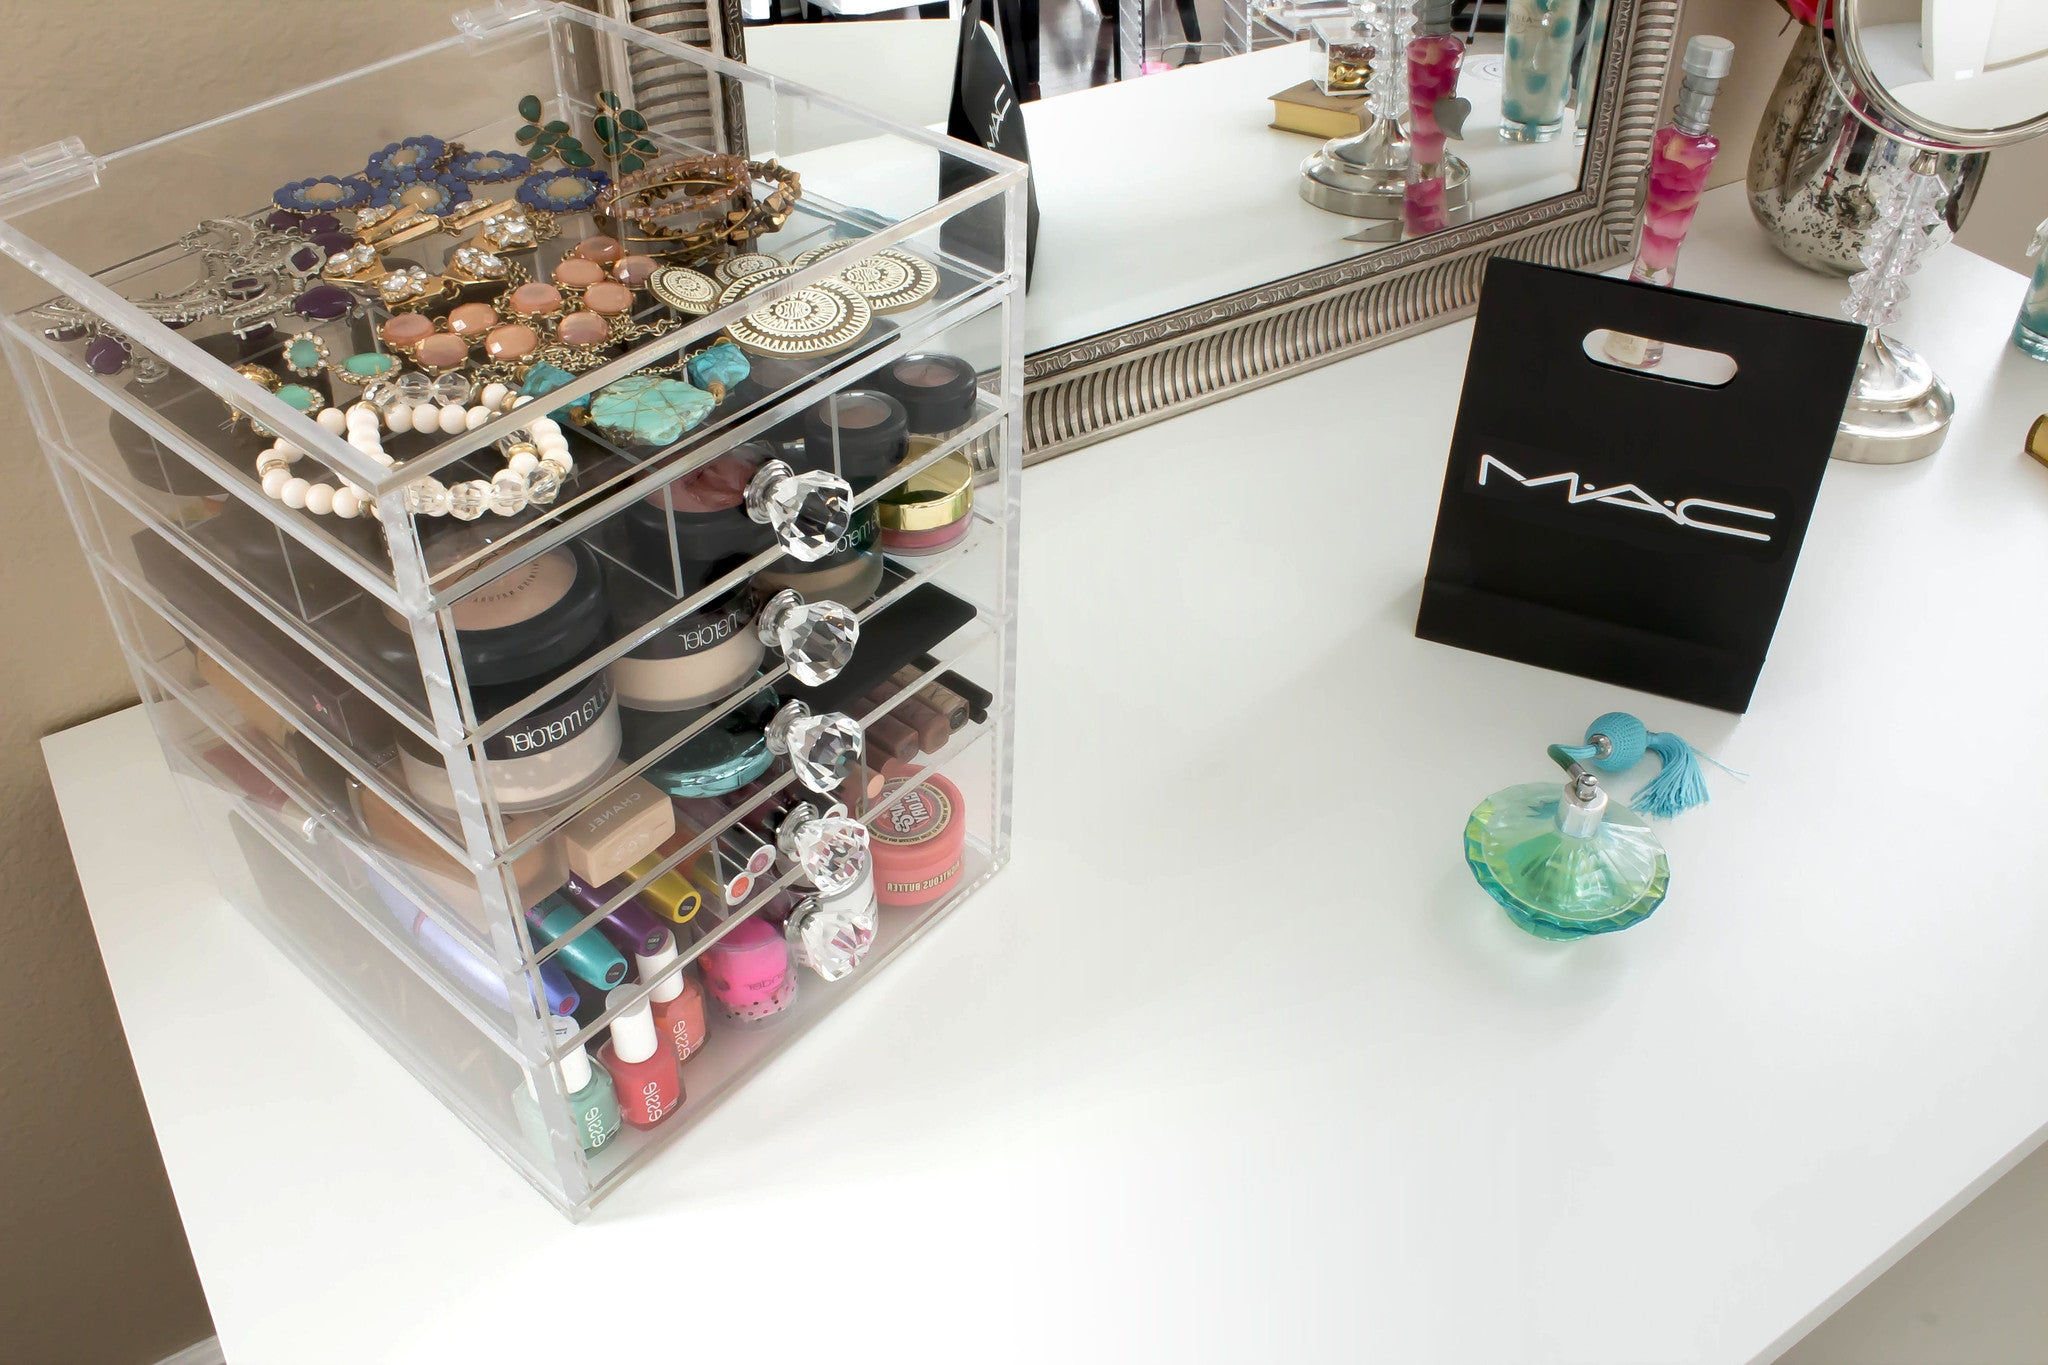 Clear Acrylic Makeup Organizer Kardashianstyle Storage Cutie Cube - Acrylic cube makeup organizer with drawers